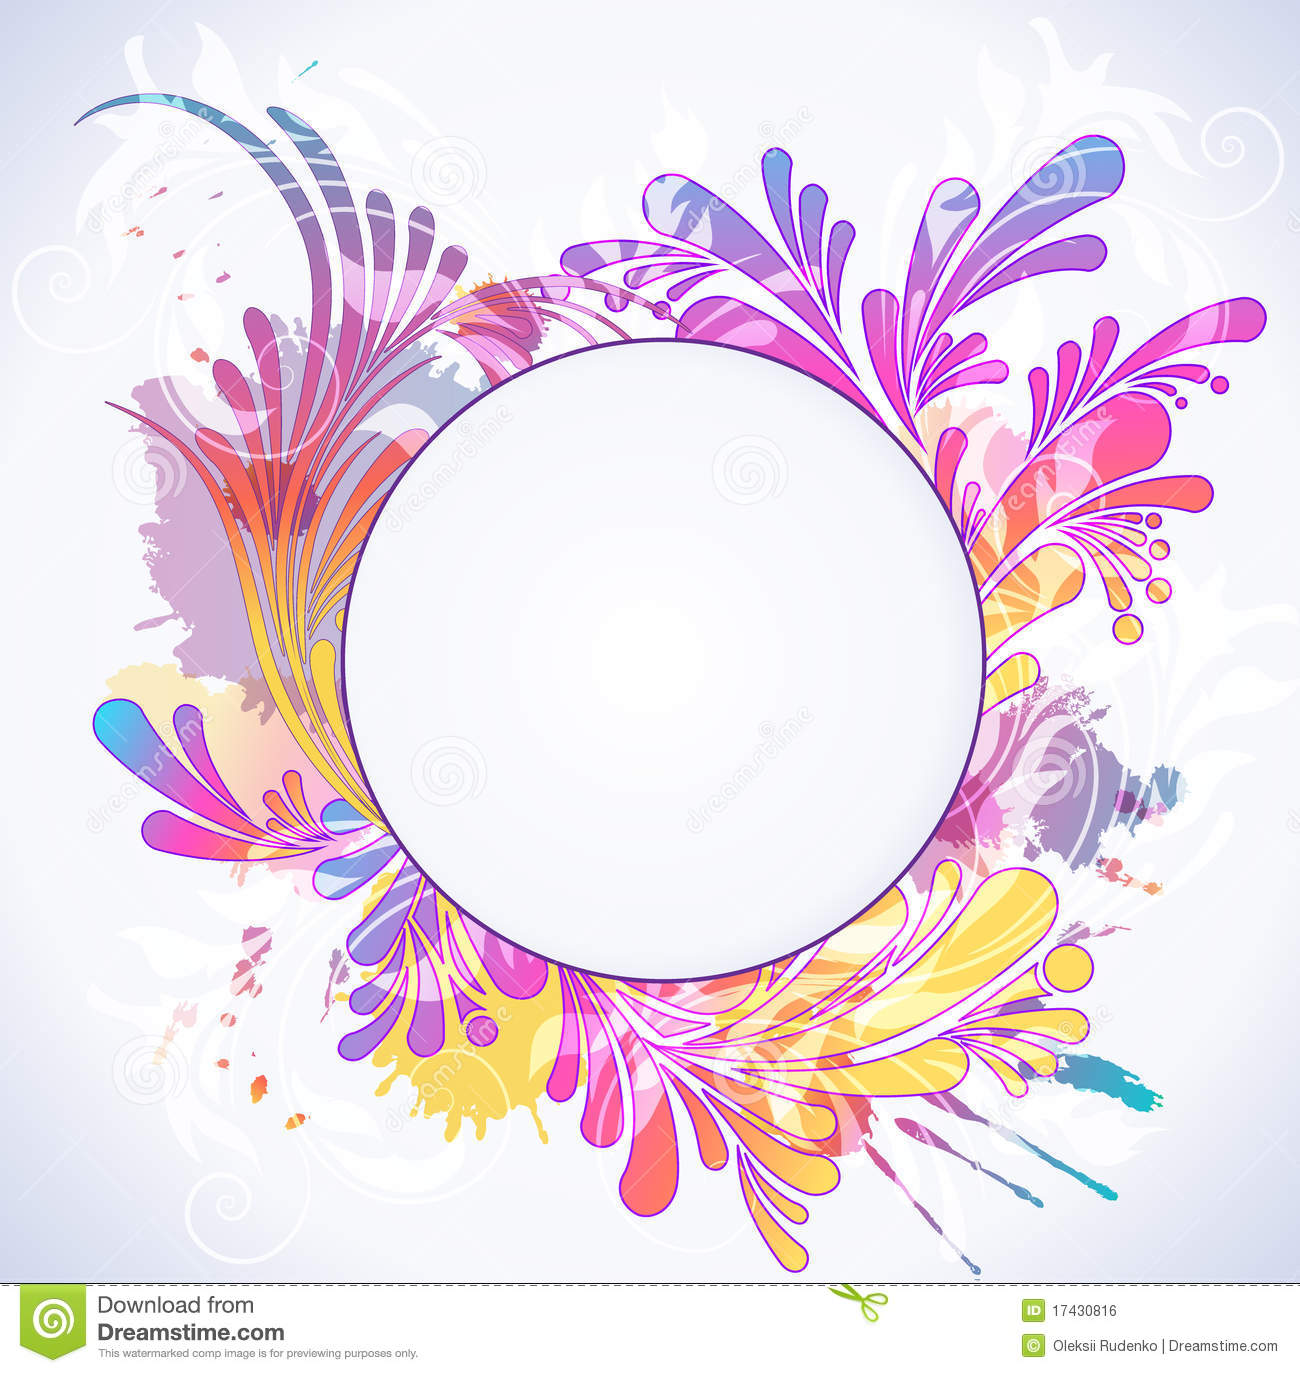 colorful floral background patterns - photo #32